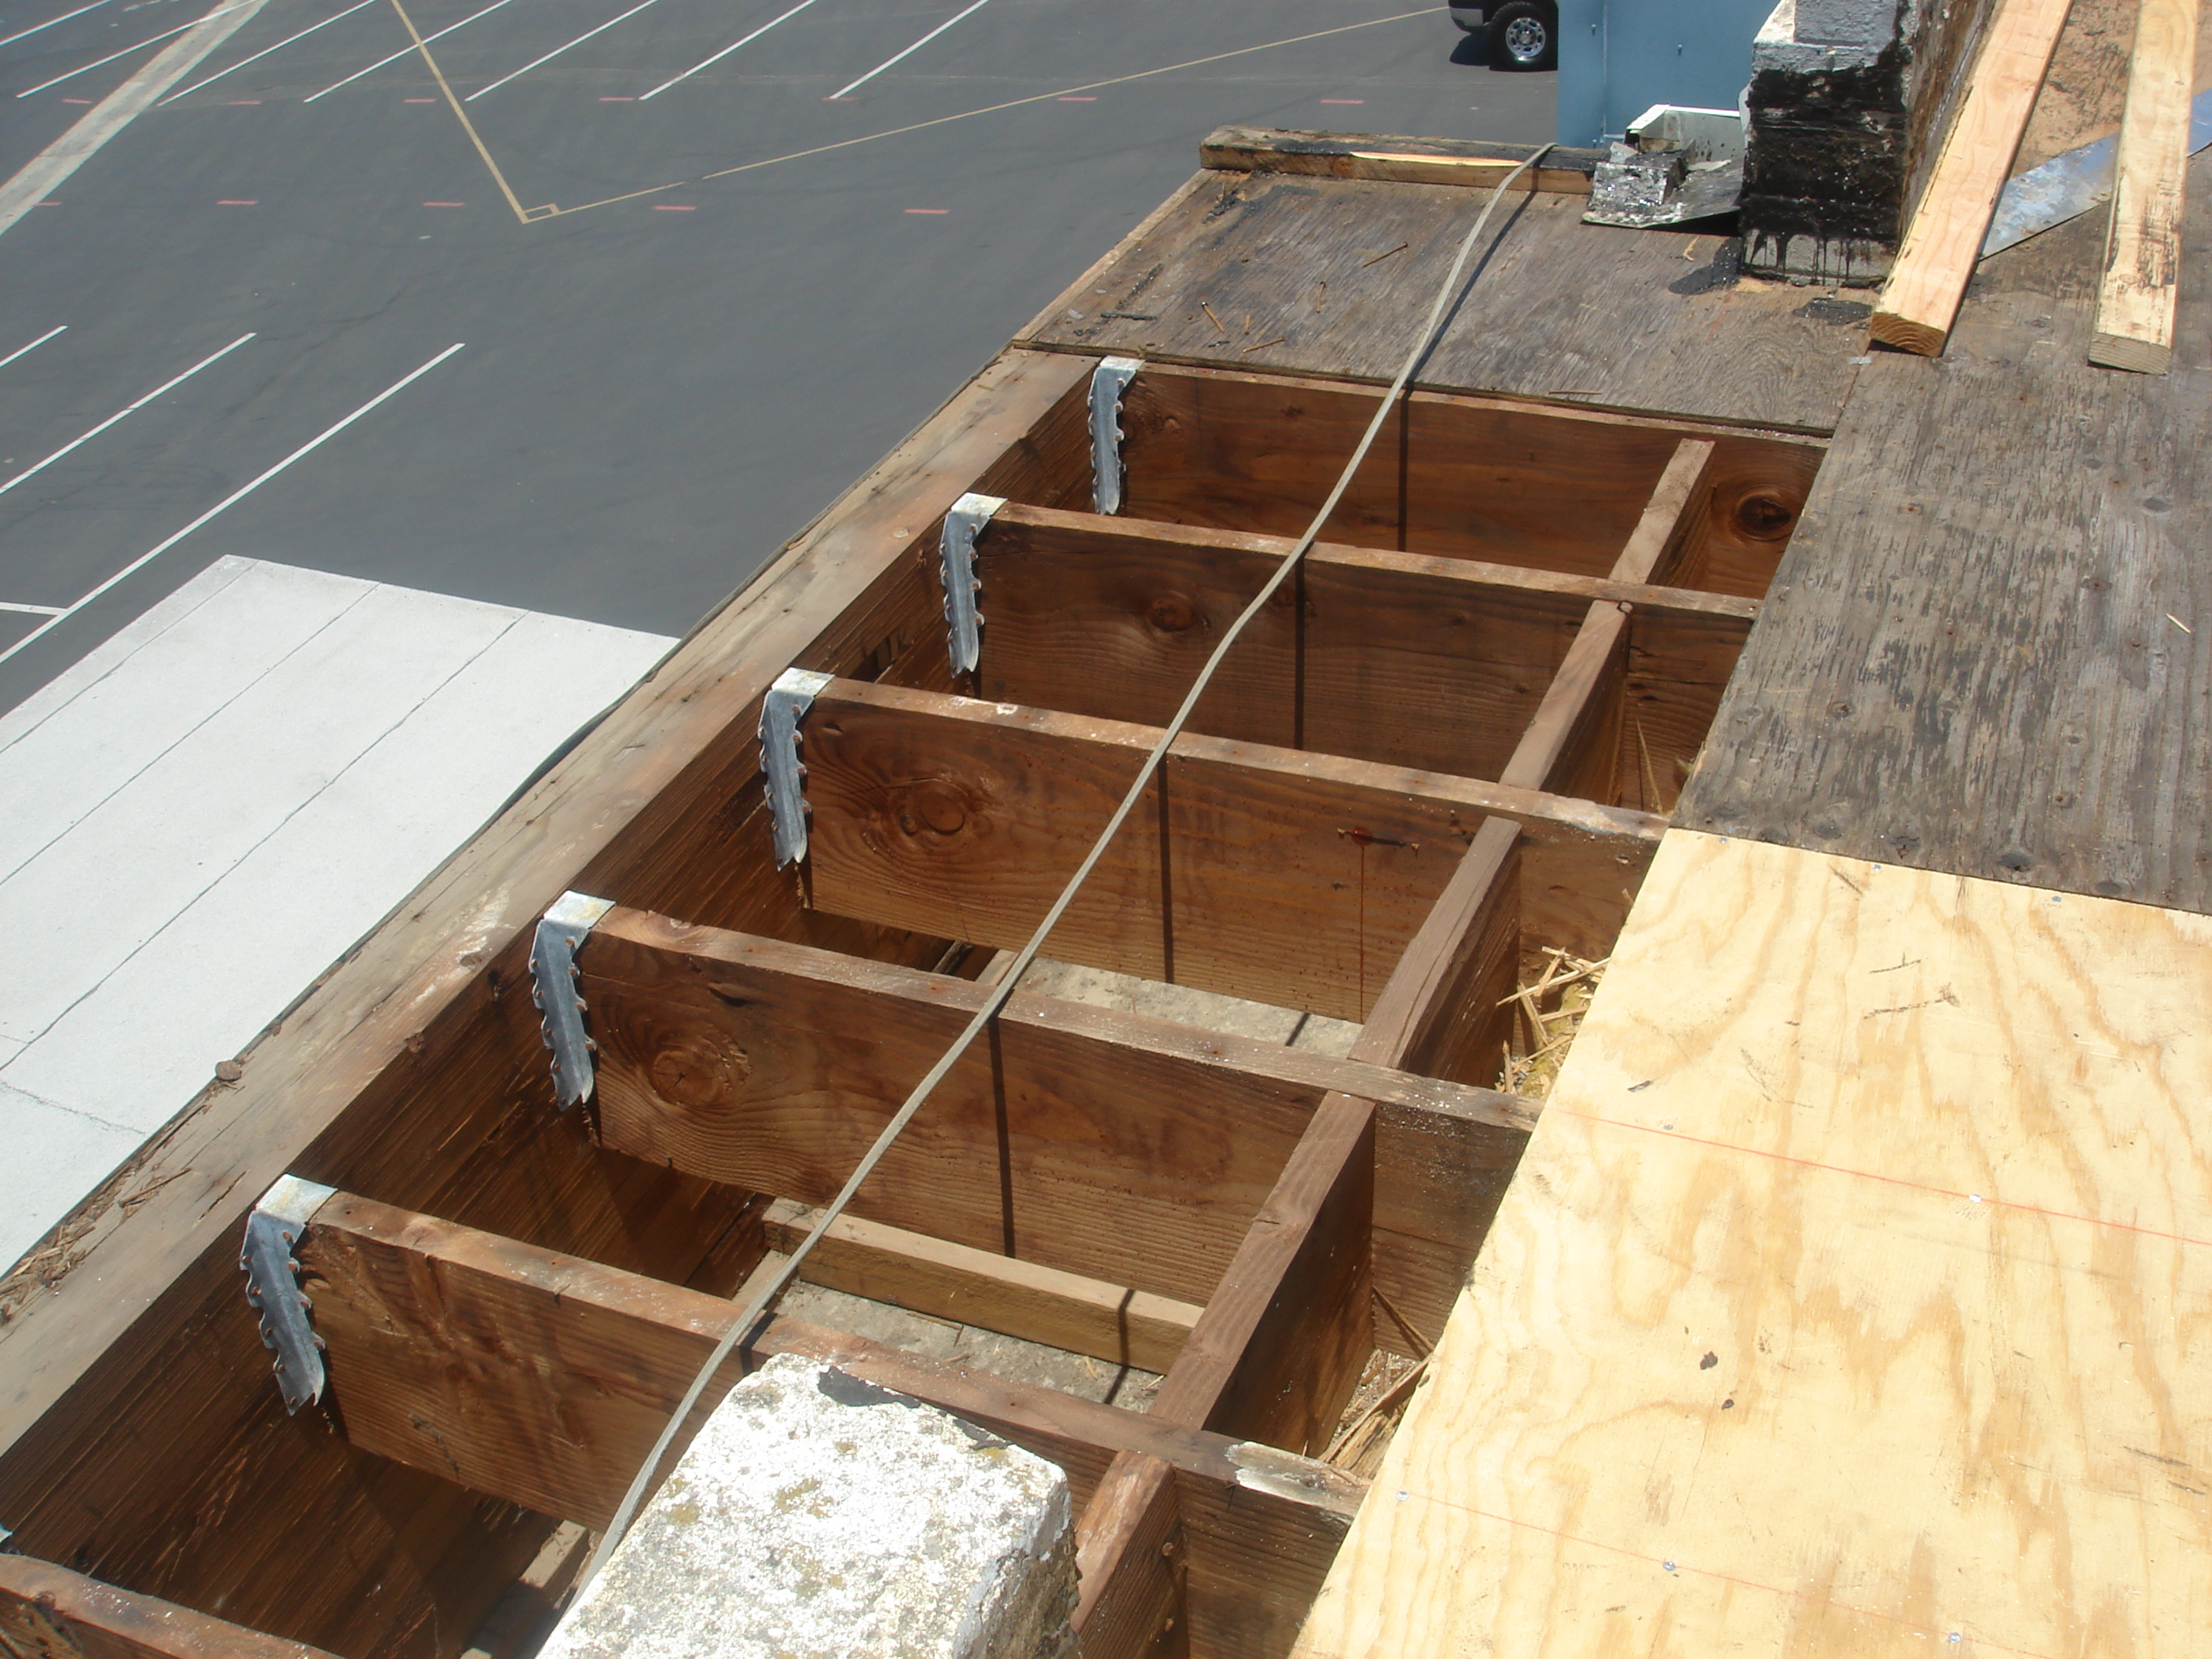 Commercial And Industrial Roofing Systems